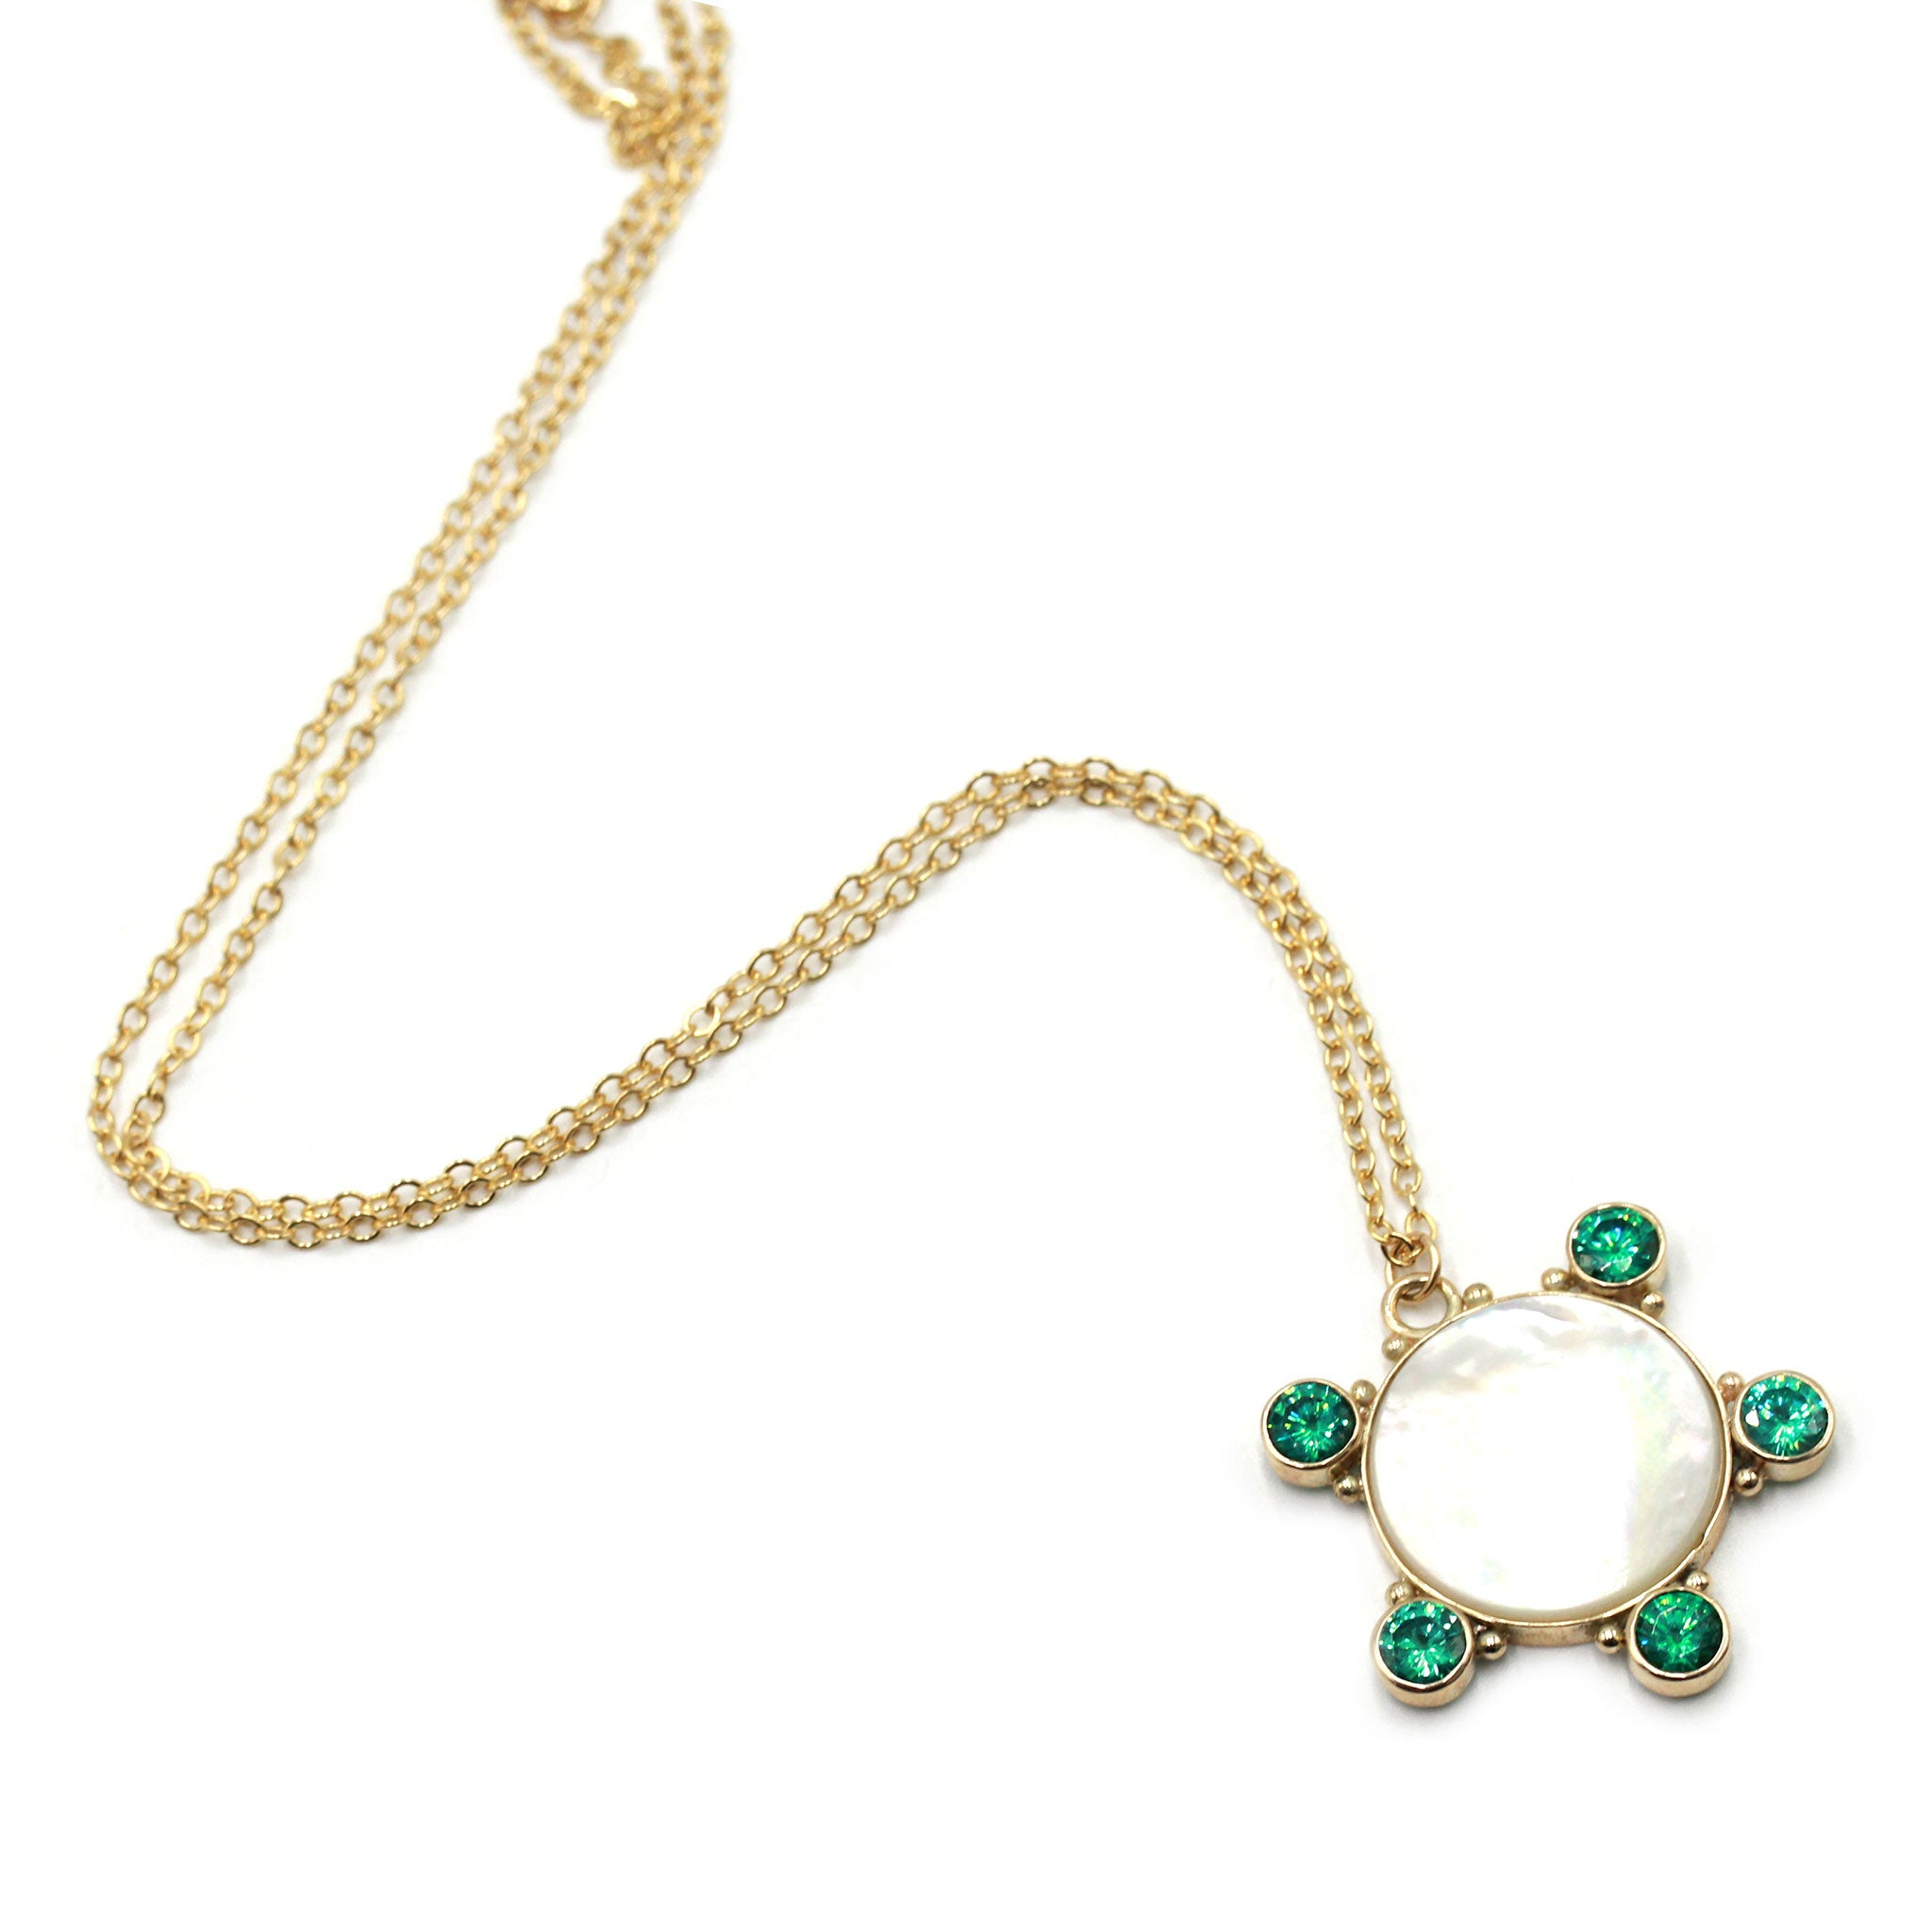 Talisman Necklace with Mother of Pearl, Paraiba Tourmaline in gold